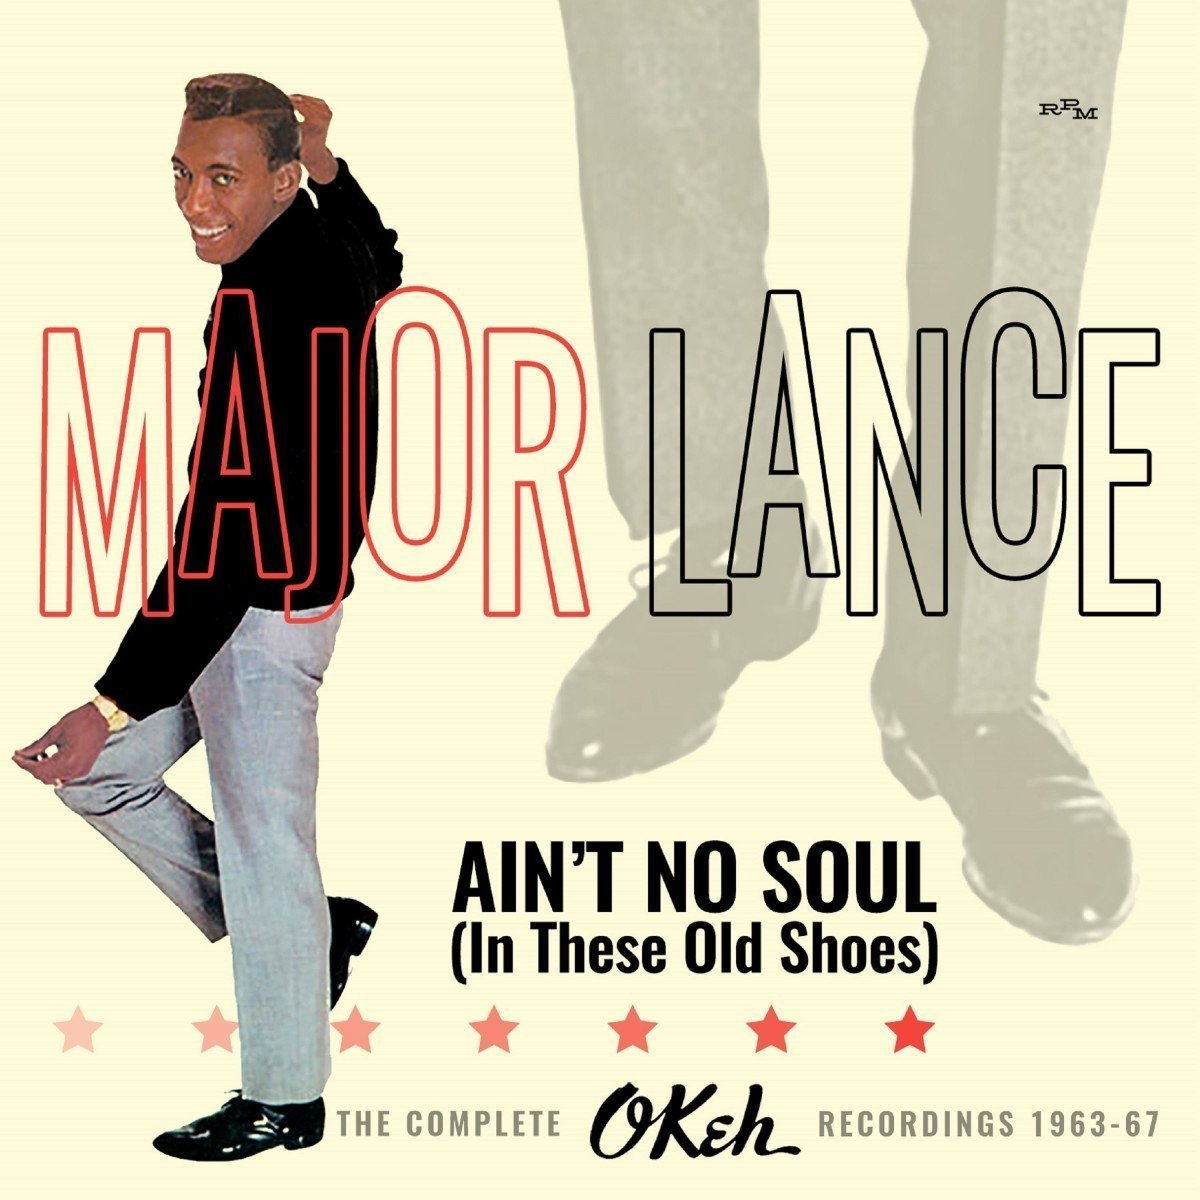 Major Lance Aint No Soul Left In These Ole Shoes